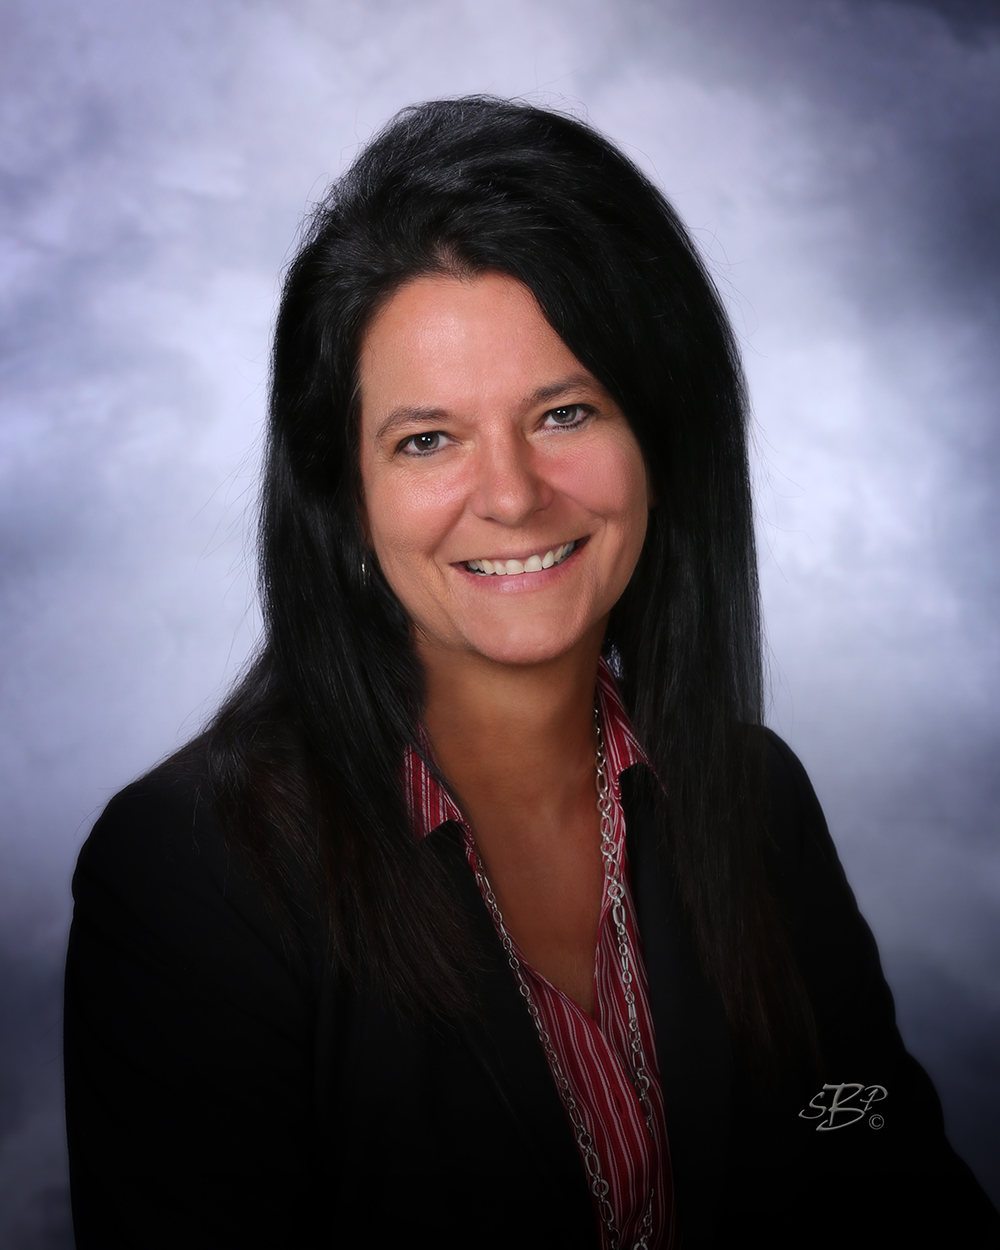 Stacey Stracke - Owner/Broker